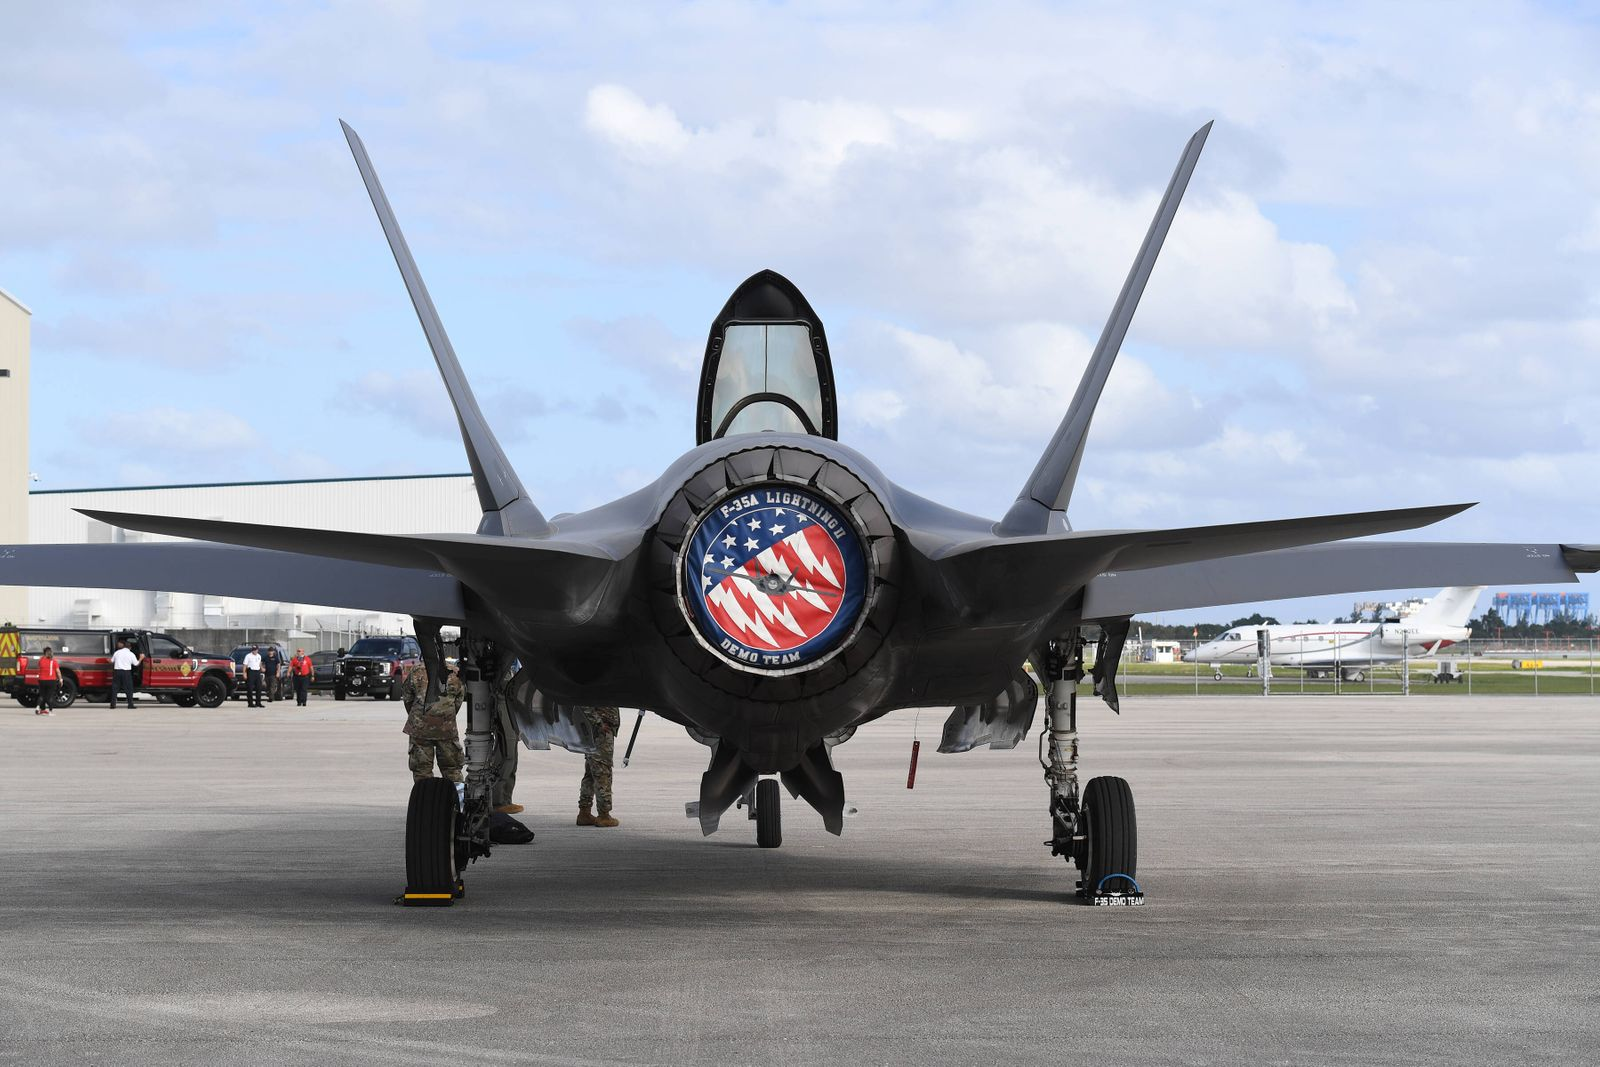 FORT LAUDERDALE FL - NOVEMBER 19: The Lockheed Martin F-35 Lightning II is seen on the tarmac during press day for the